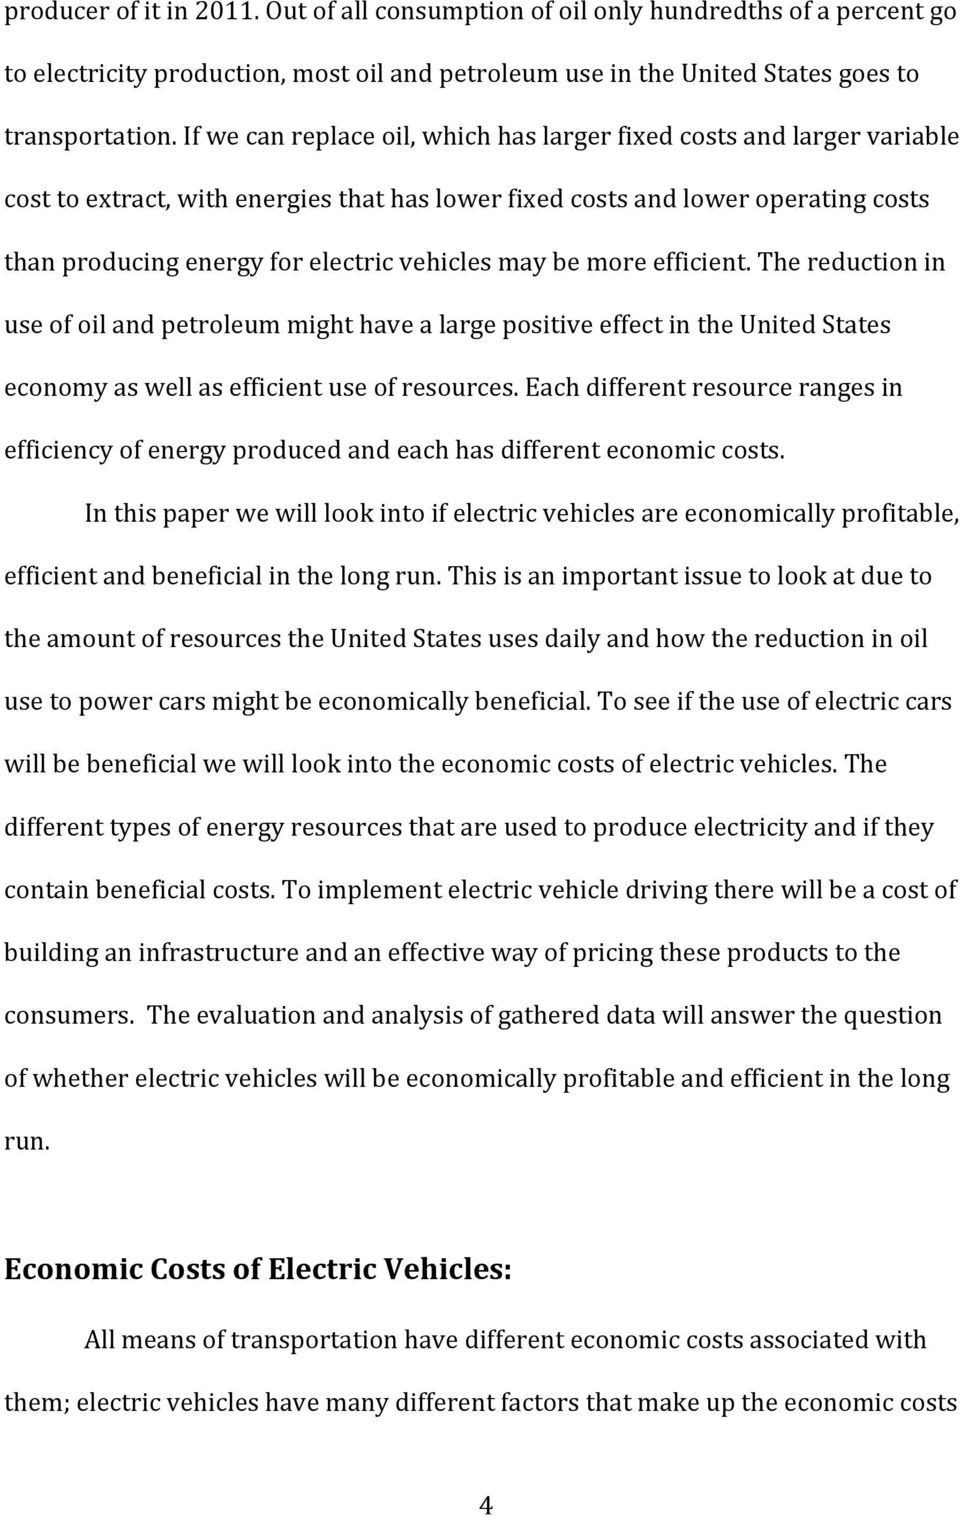 may be more efficient. The reduction in use of oil and petroleum might have a large positive effect in the United States economy as well as efficient use of resources.